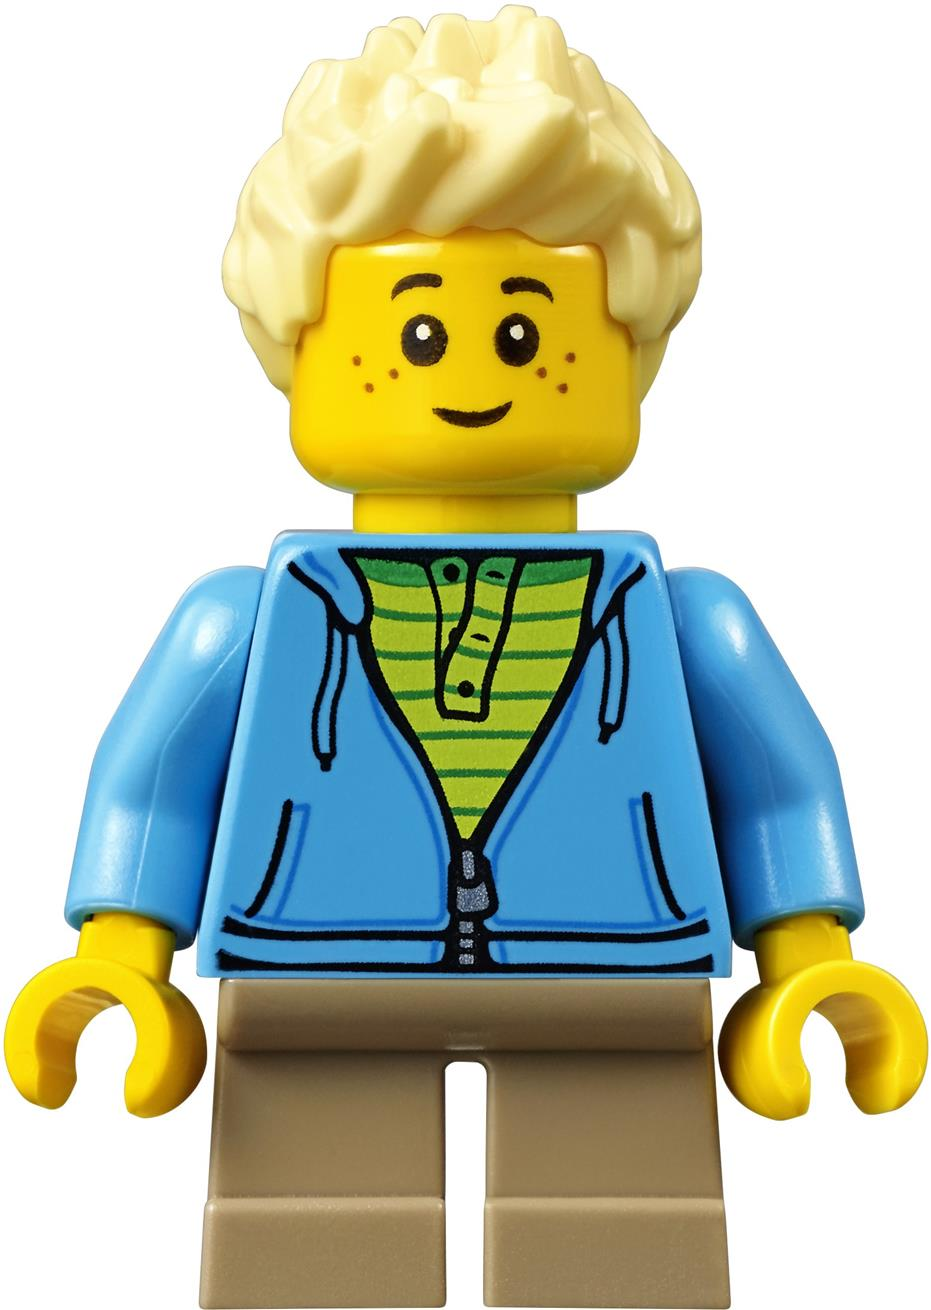 LEGO 60134 City Fun in Park Children - Blonde Boy Minifigure NEW